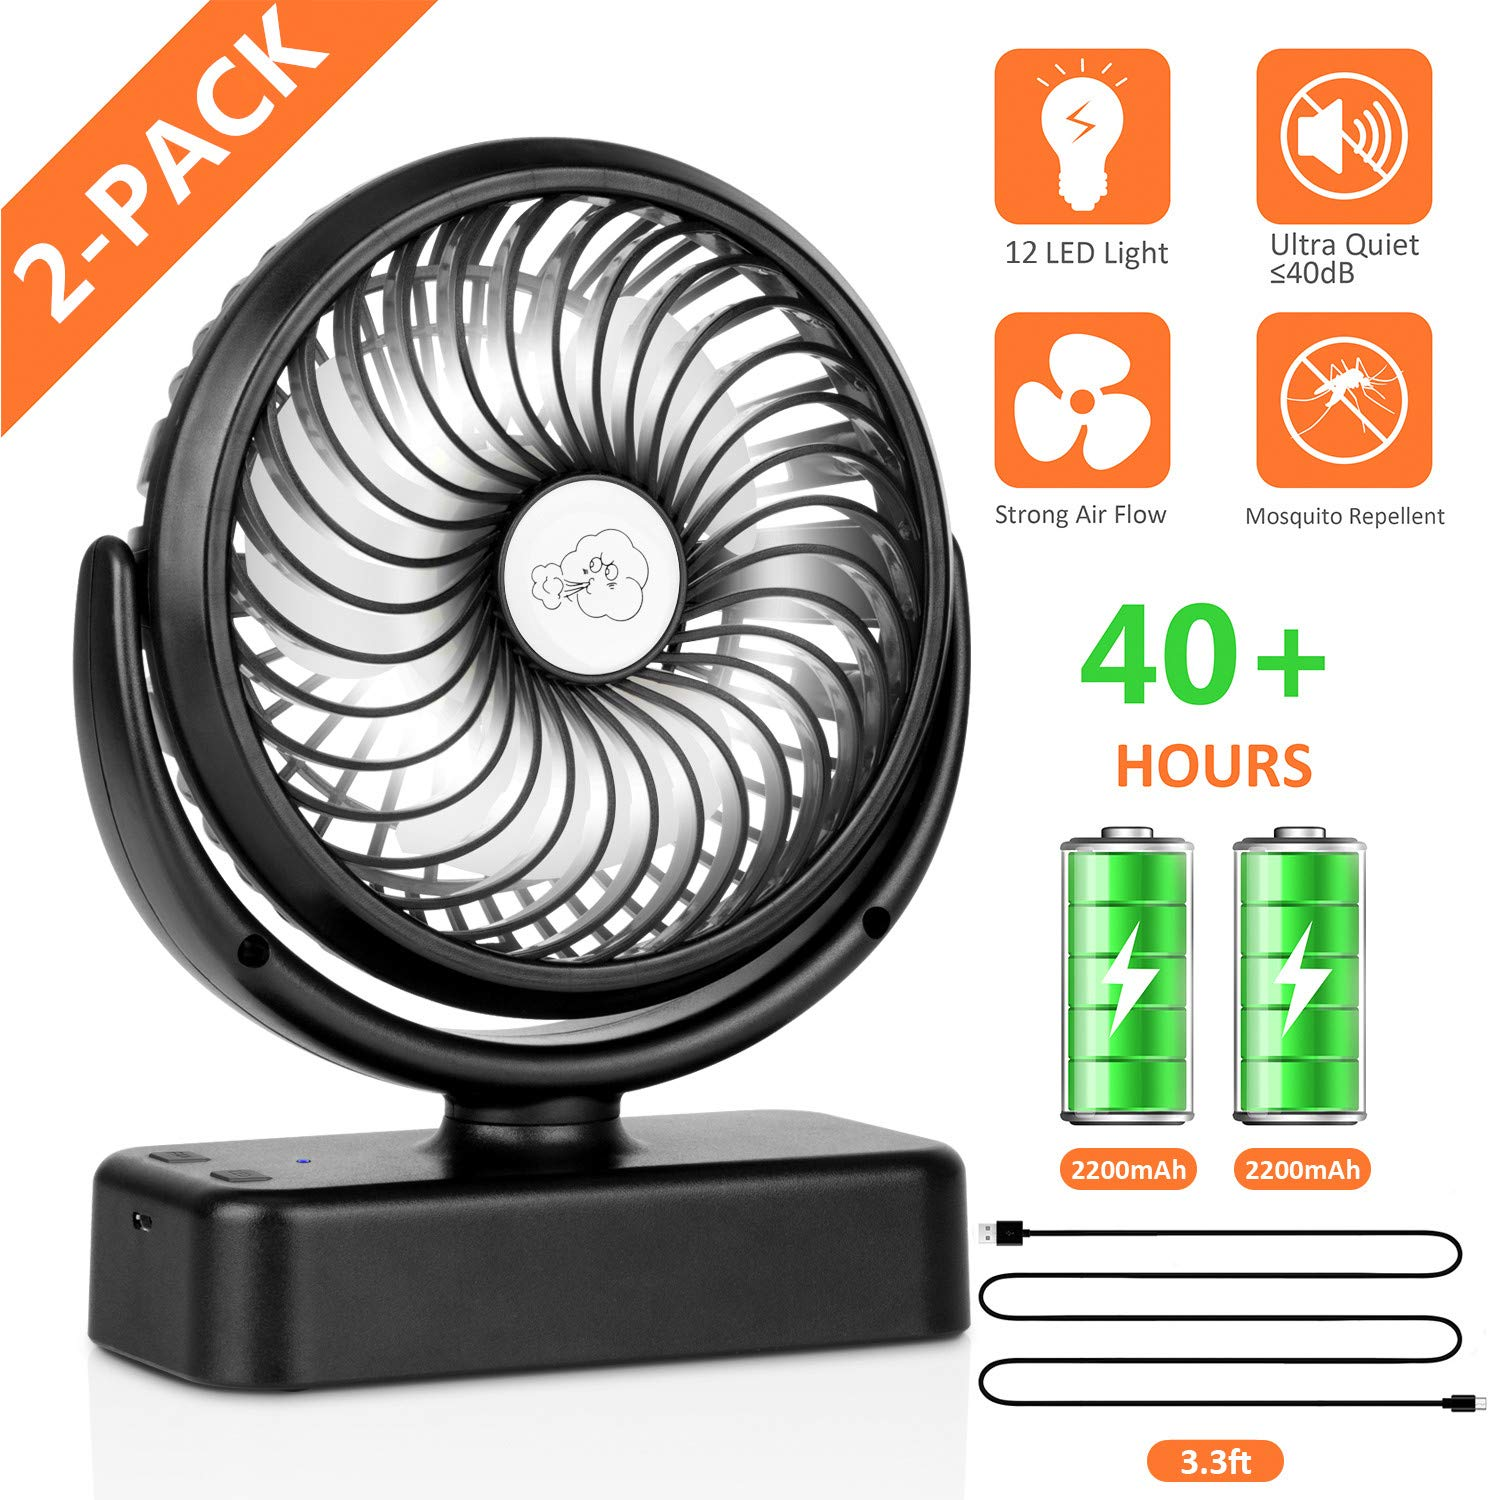 COMLIFE Portable Desk Fan with 12 Led Lights, 4400mAh Rechargeable Battery Operated Fan with Built-in Hook, 3 Speeds, 360°Rotation, Mini Personal Cooling Fan for Camping, Hiking, Home,Office (2-Pack) by COMLIFE